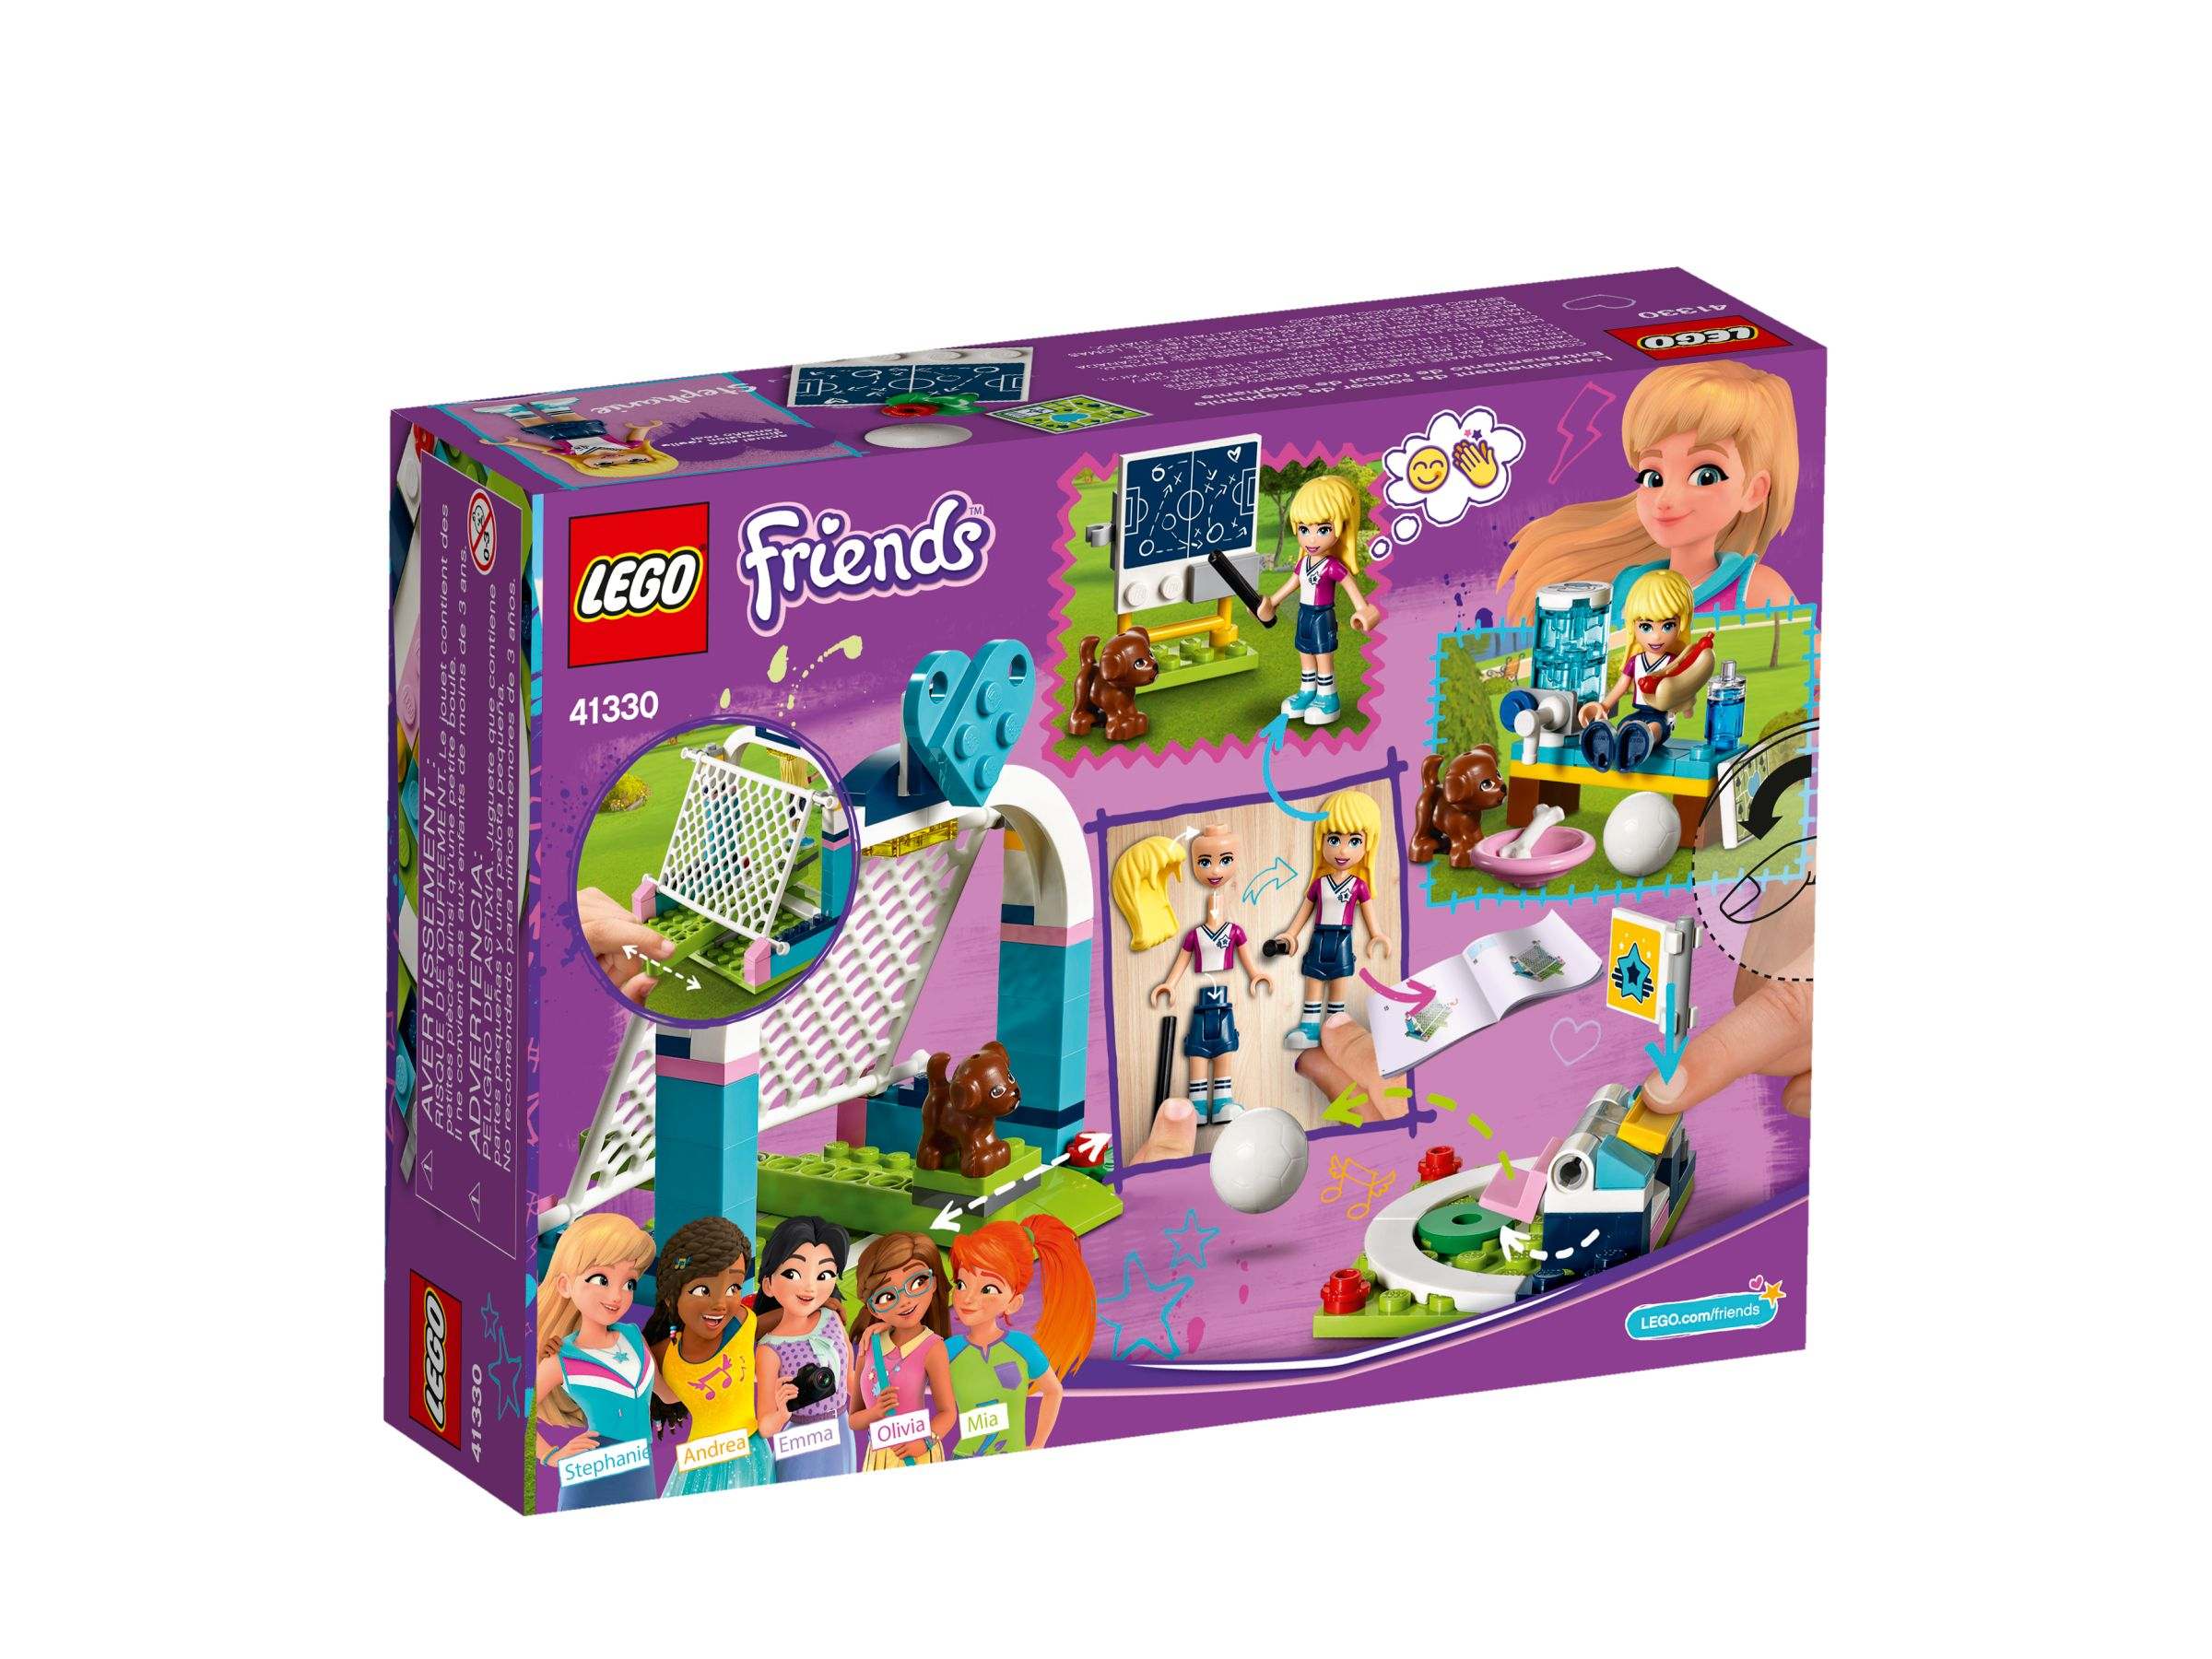 LEGO Friends 41330 Fußballtraining mit Stephanie LEGO_41330_alt2.jpg